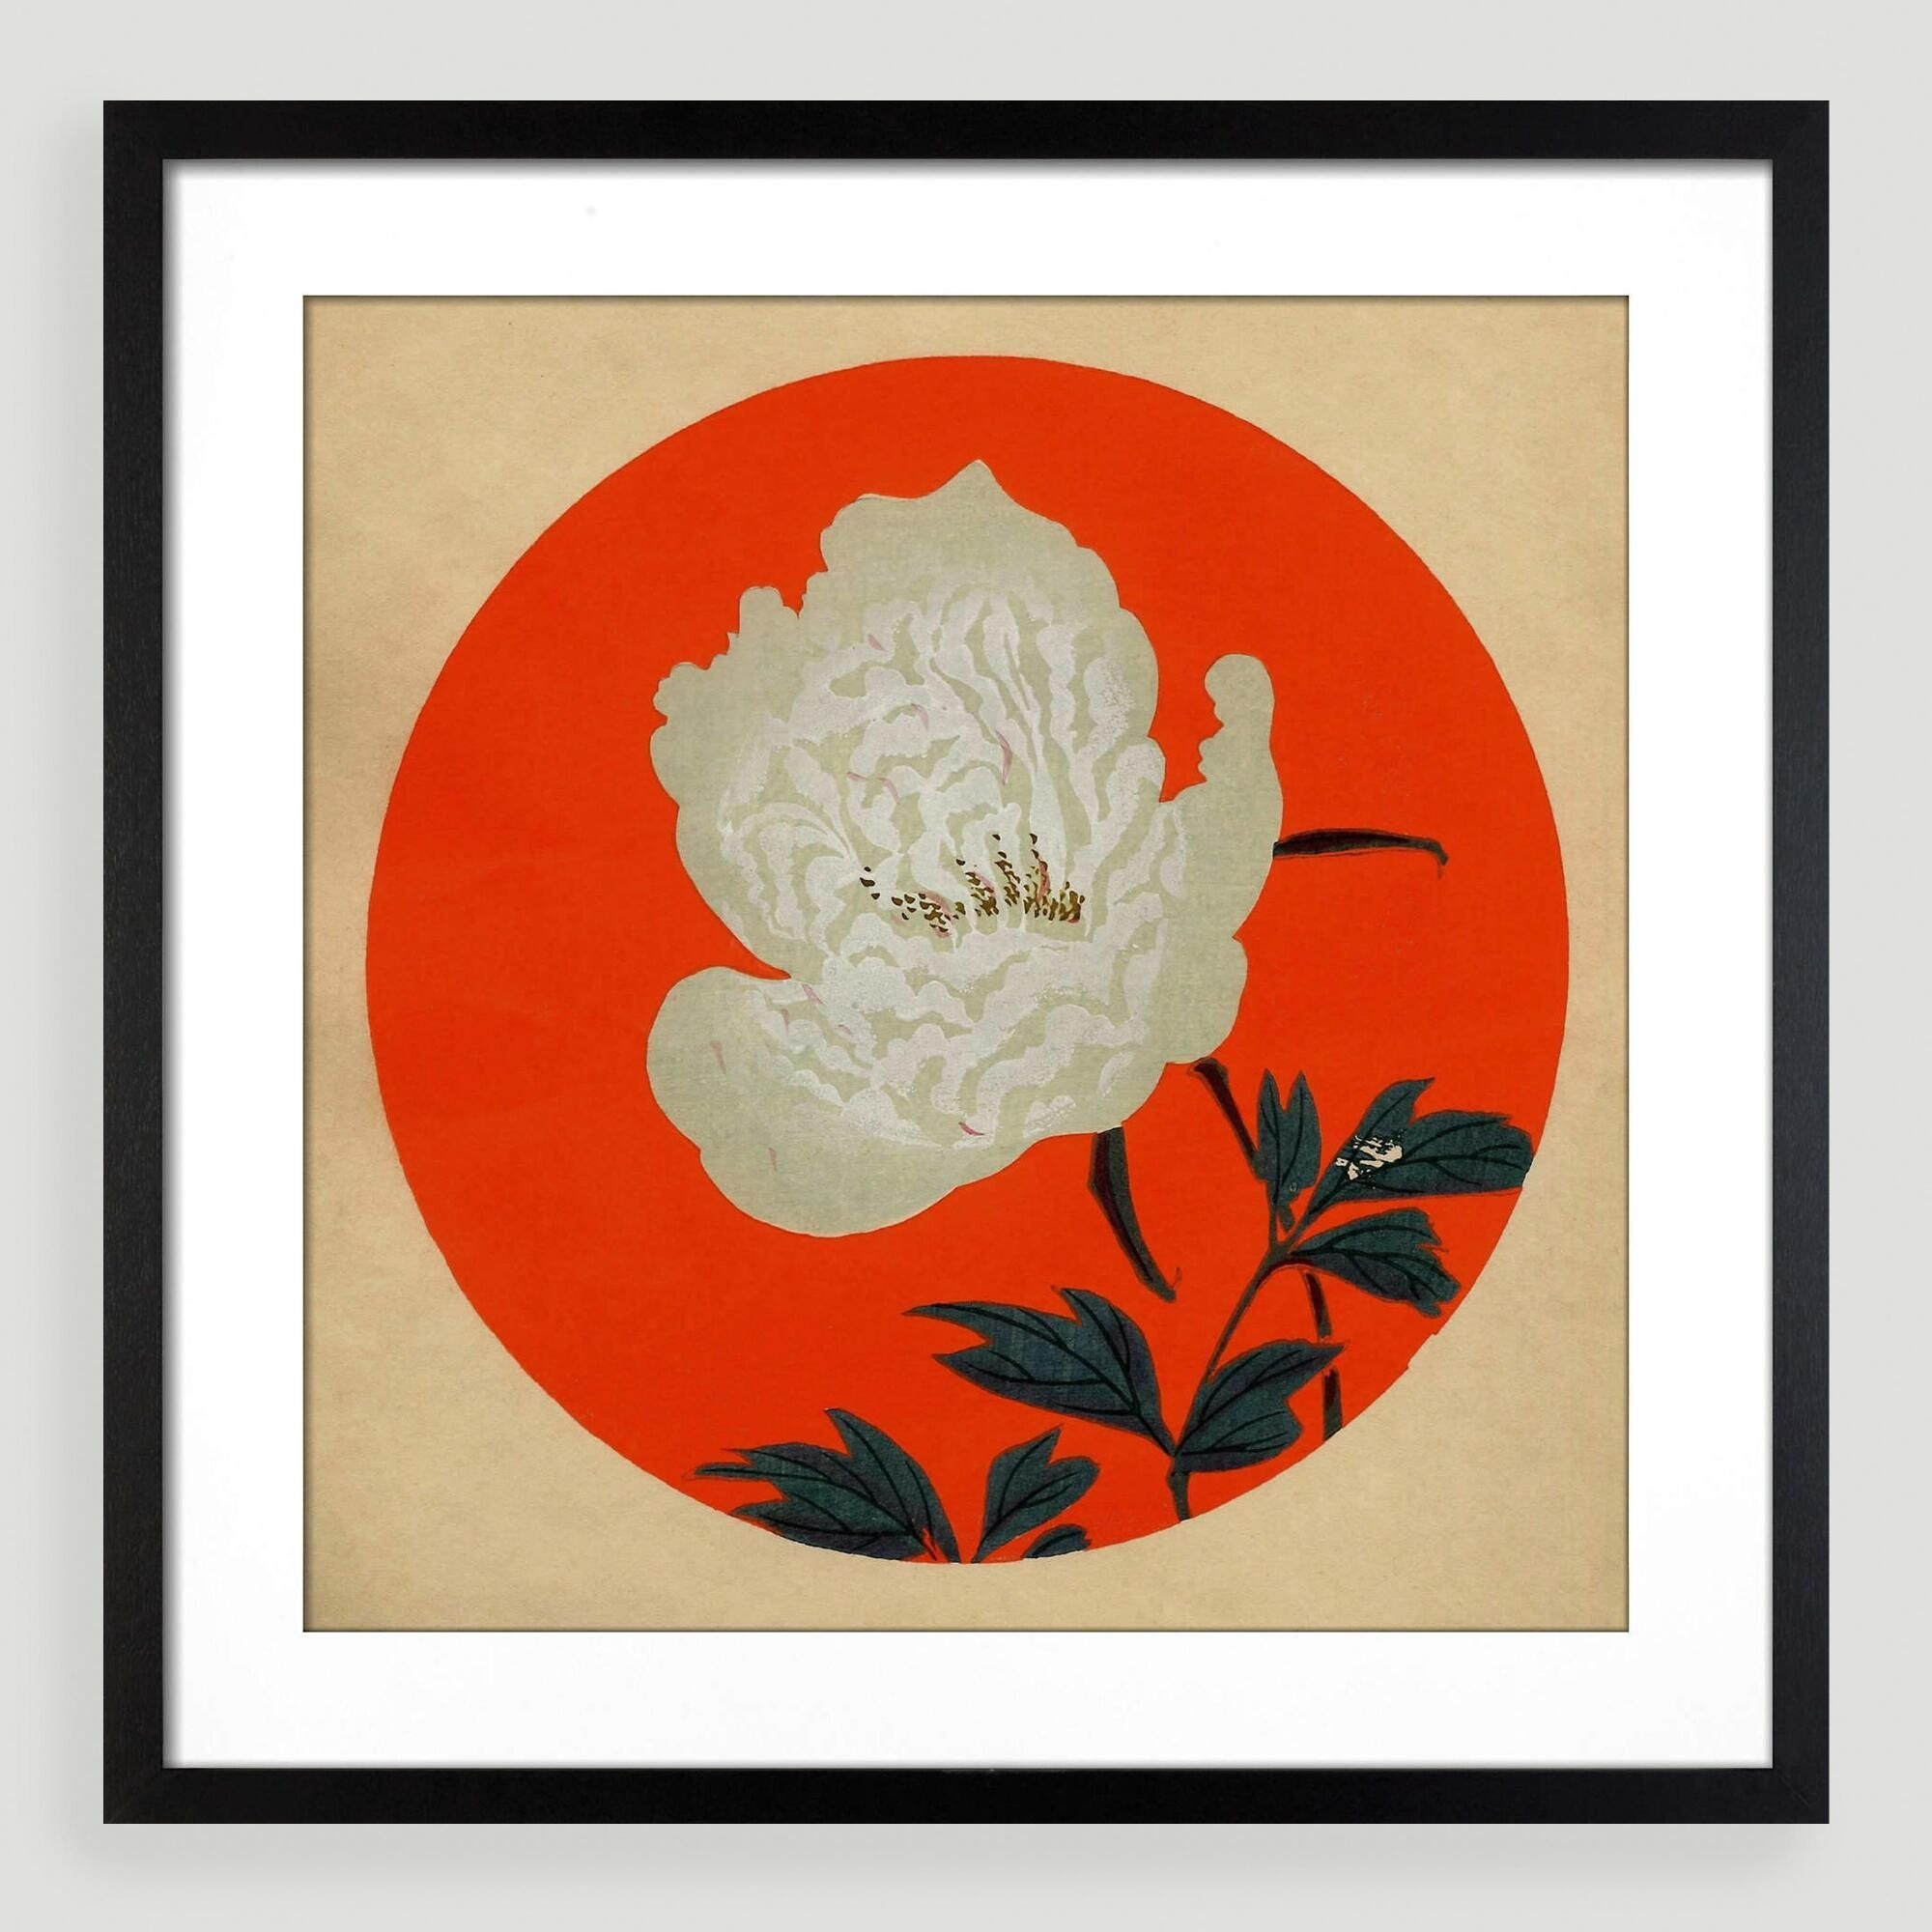 18Th Century Japanese Wall Art | World Market | Home Goods, Decor Inside World Market Wall Art (Gallery 16 of 20)